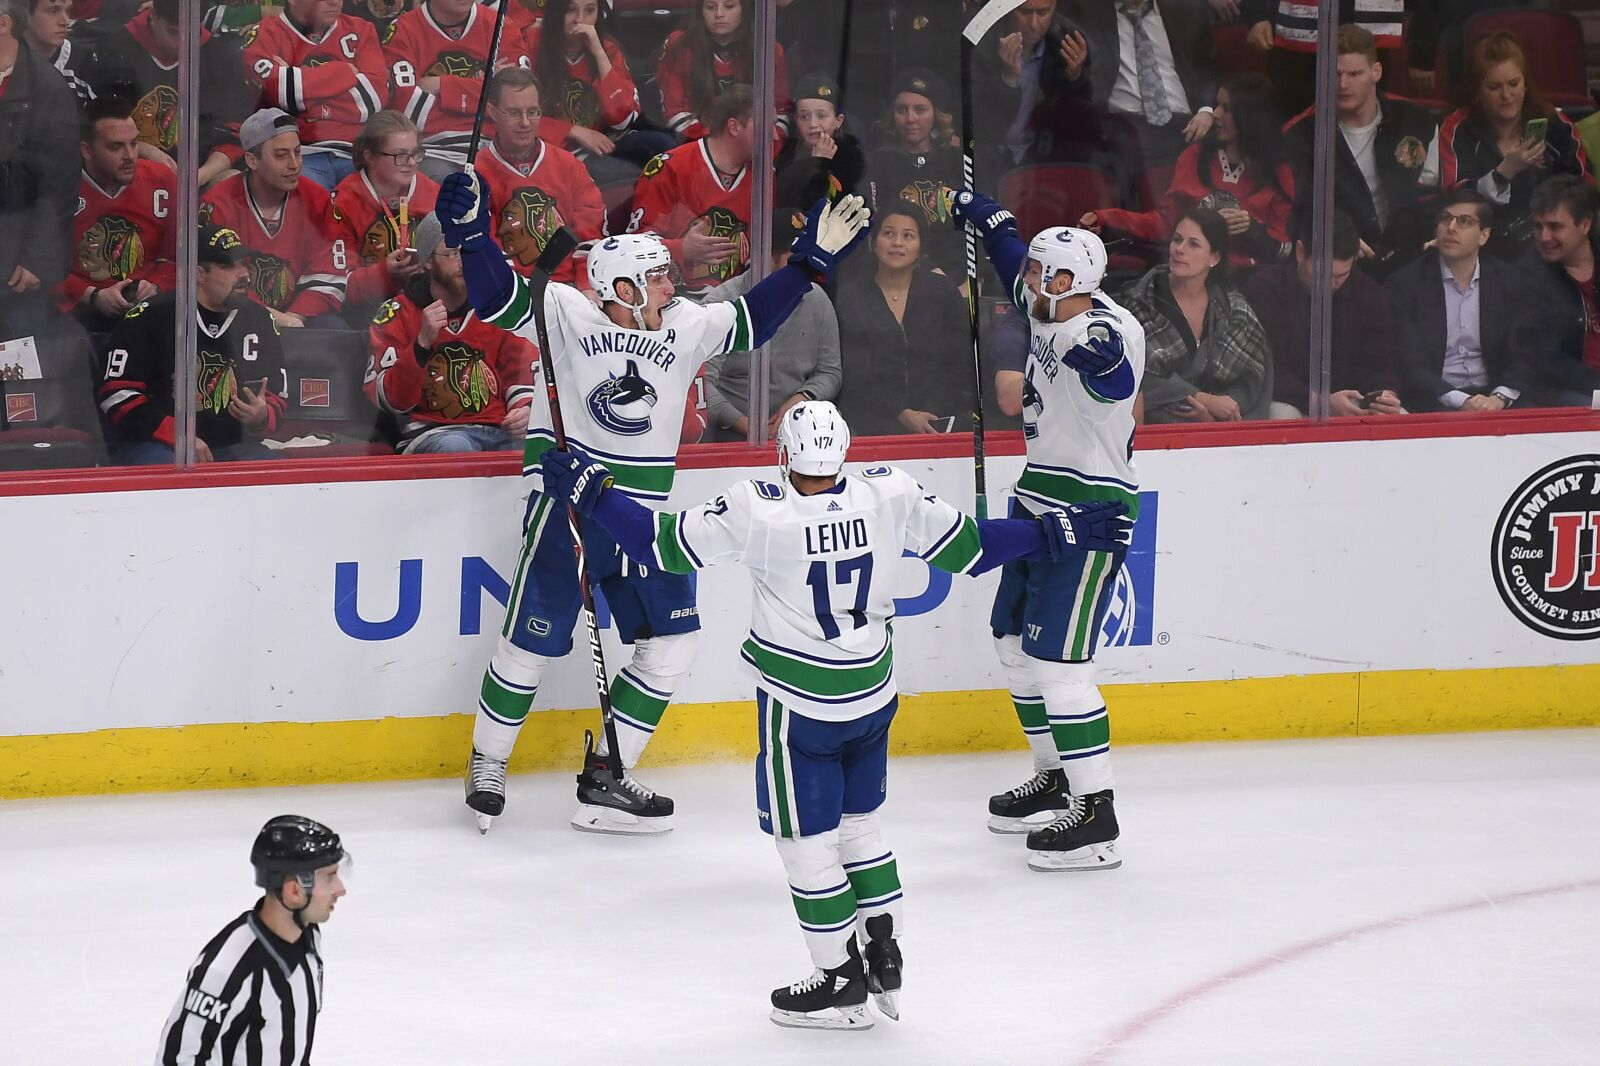 Vancouver Canucks: The team is finally coming together